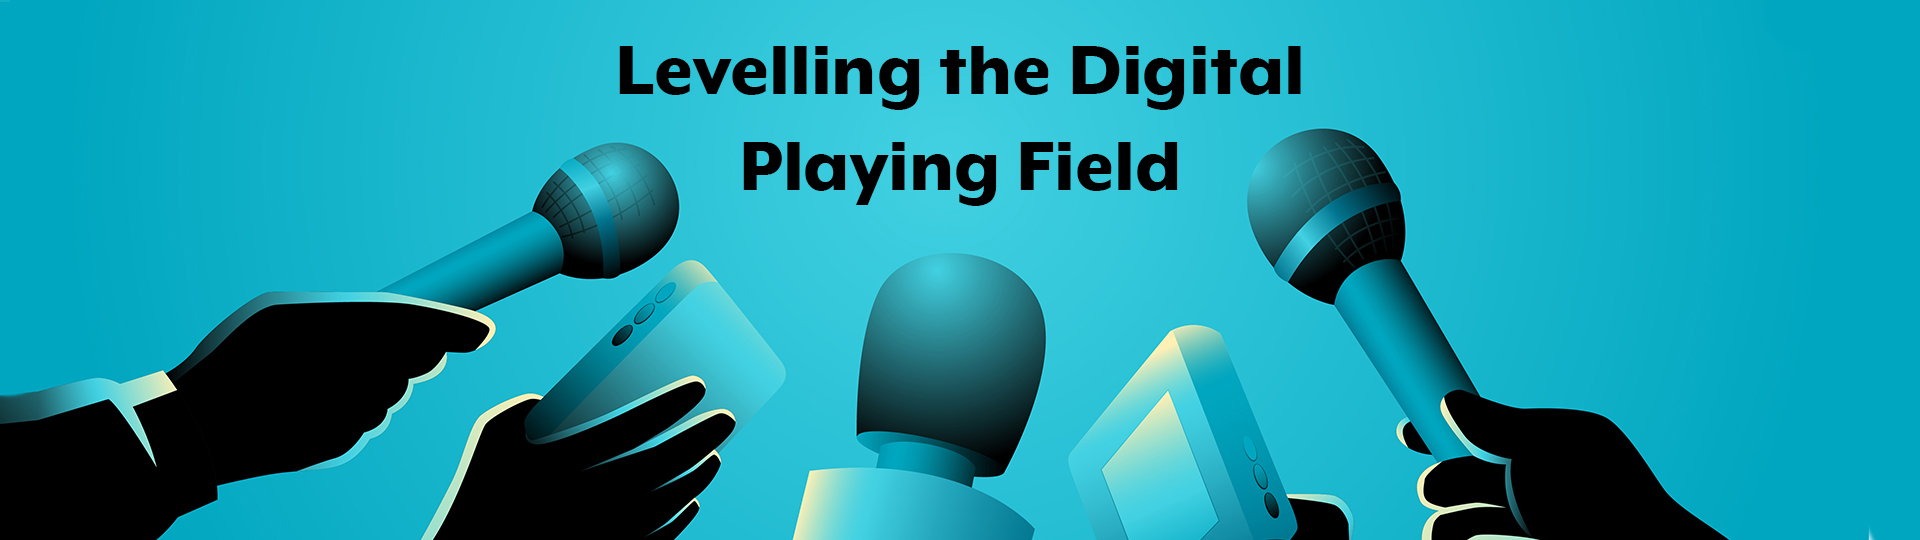 Levelling the Digital Playing Field